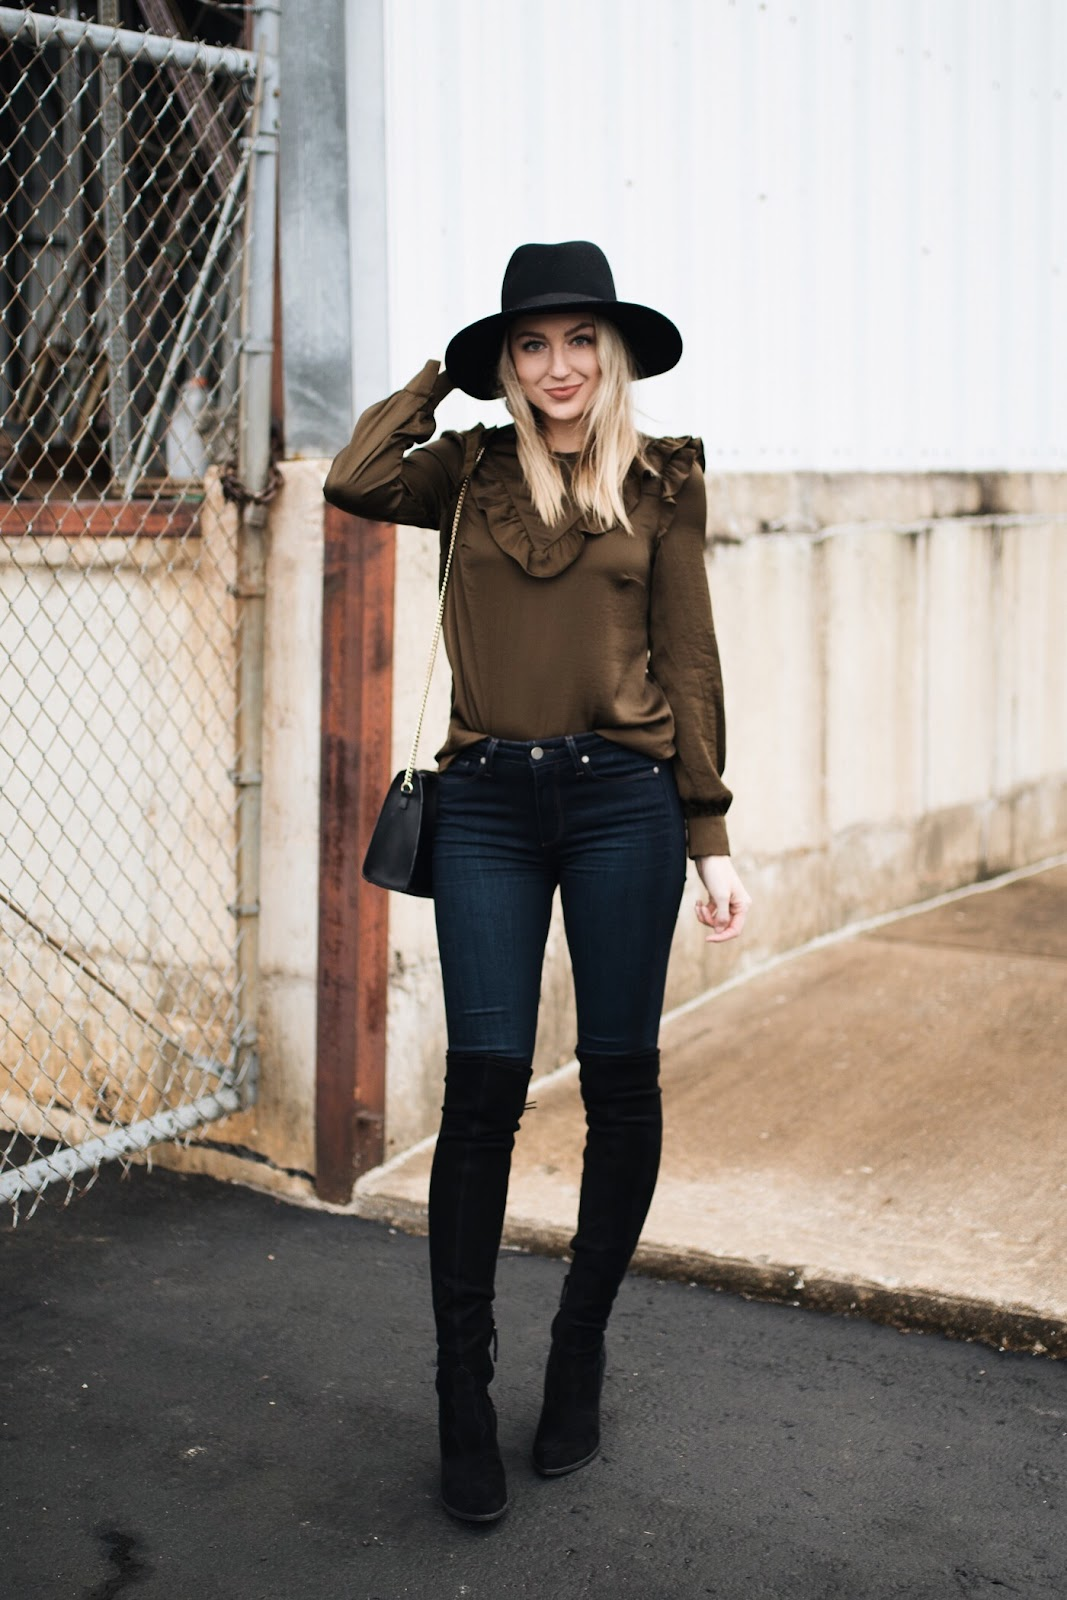 dressy ruffled top dressed down with jeans and boots